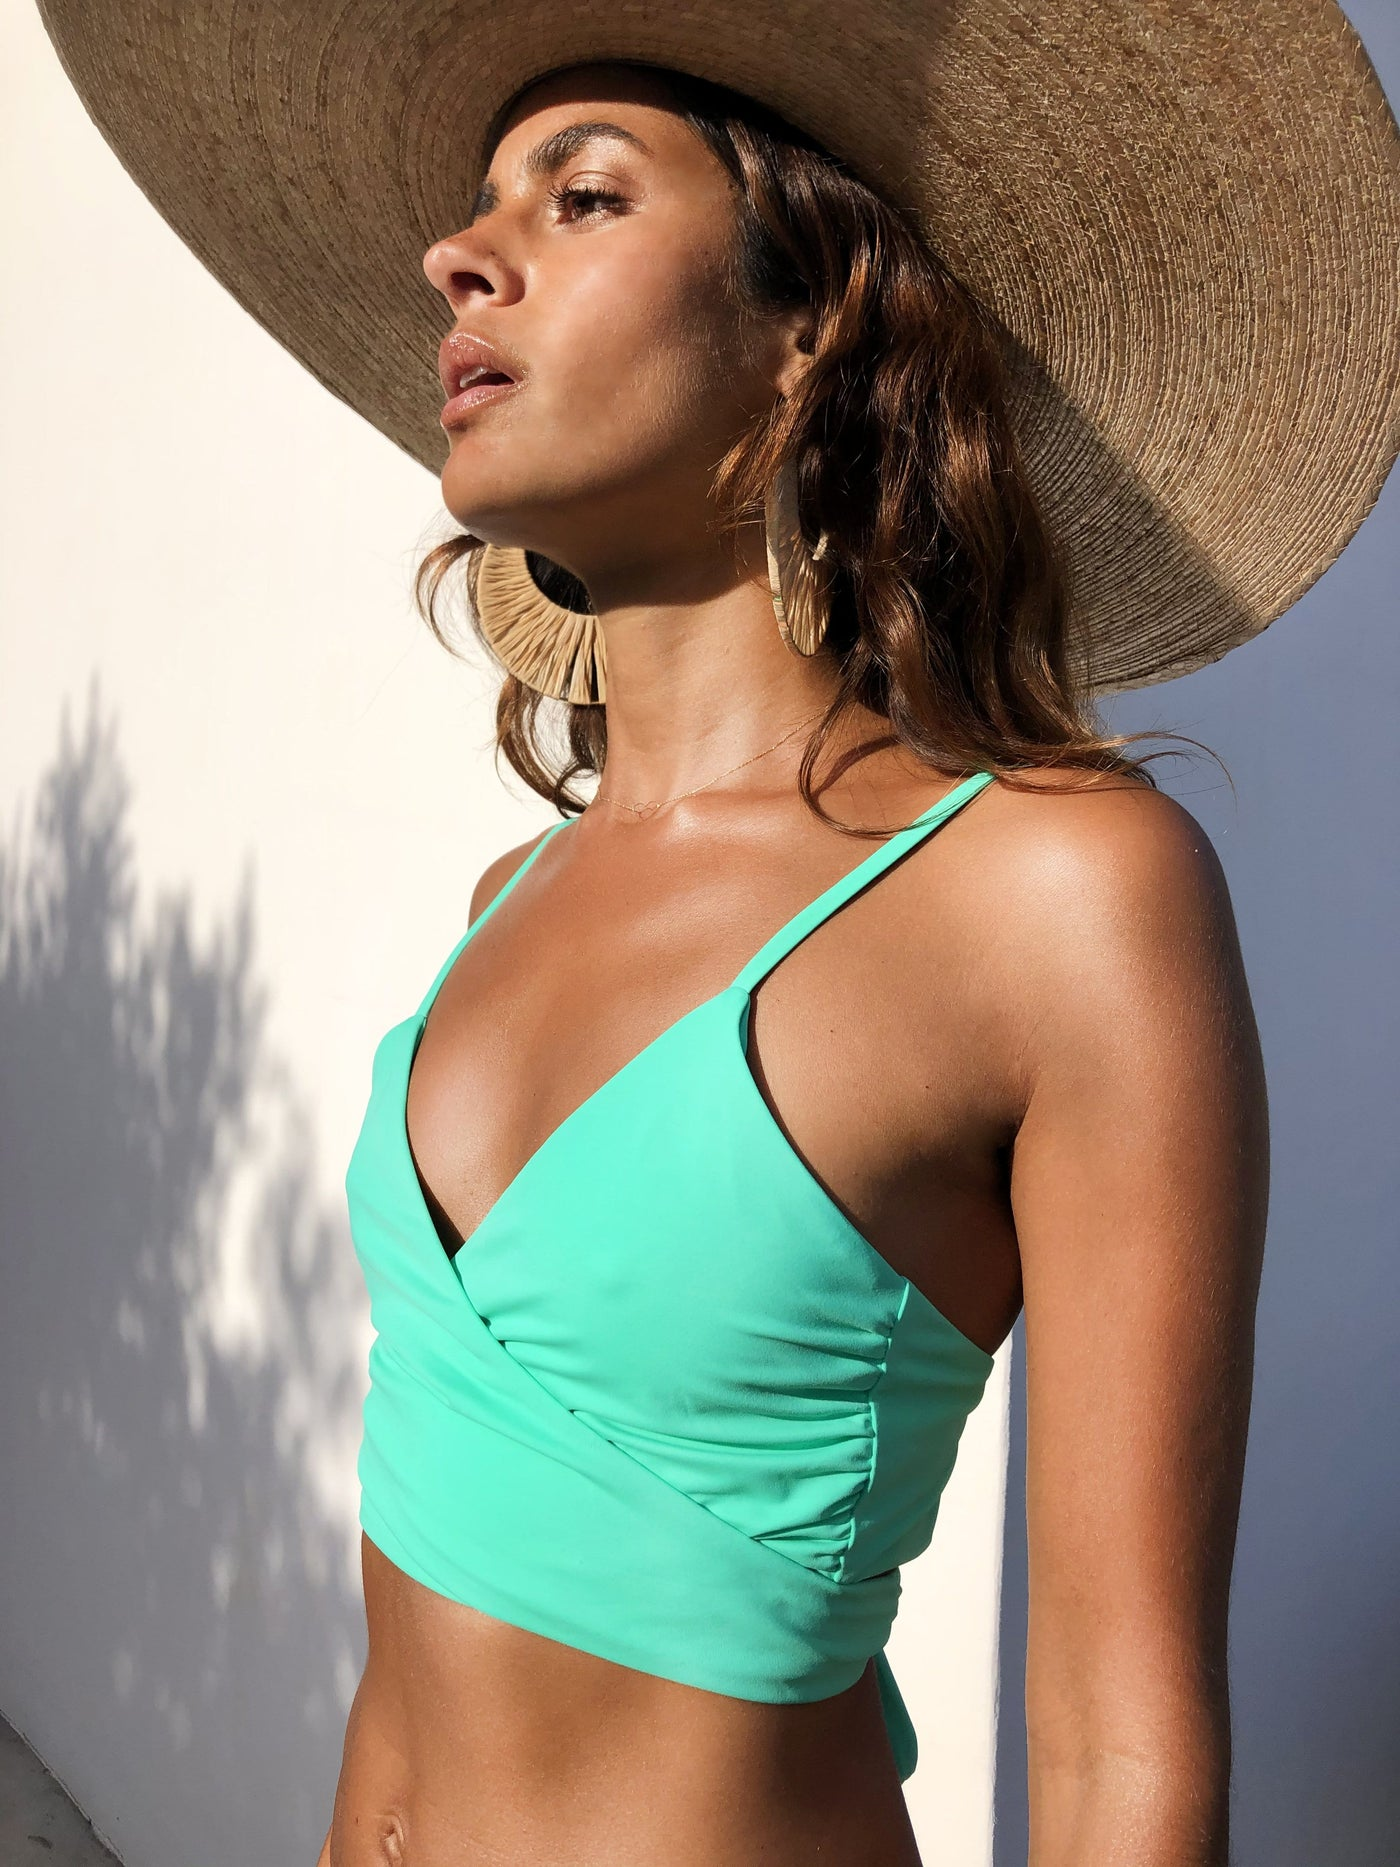 Sideways close up of Dancing Leopard model wearing Oyster Bikini Top in aqua with straw hat and earrings